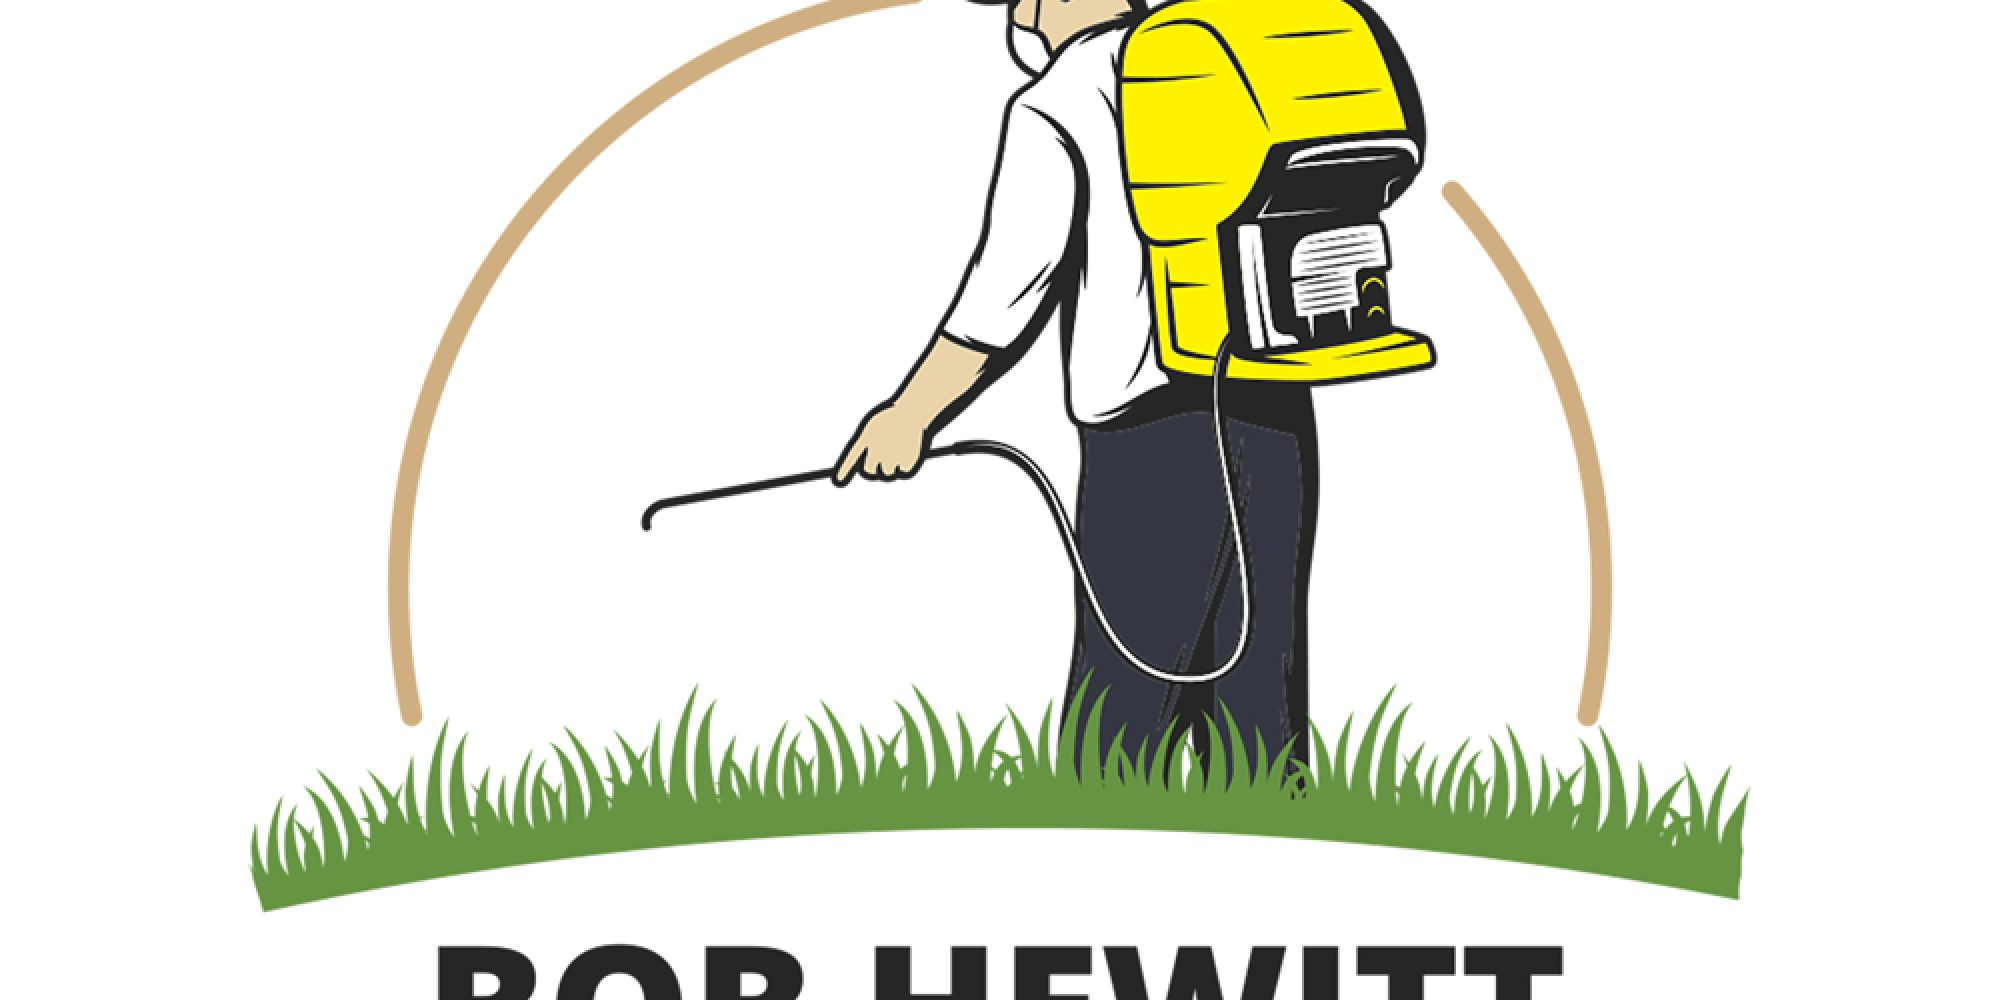 Hewitts-Lawn-Treatments-logo